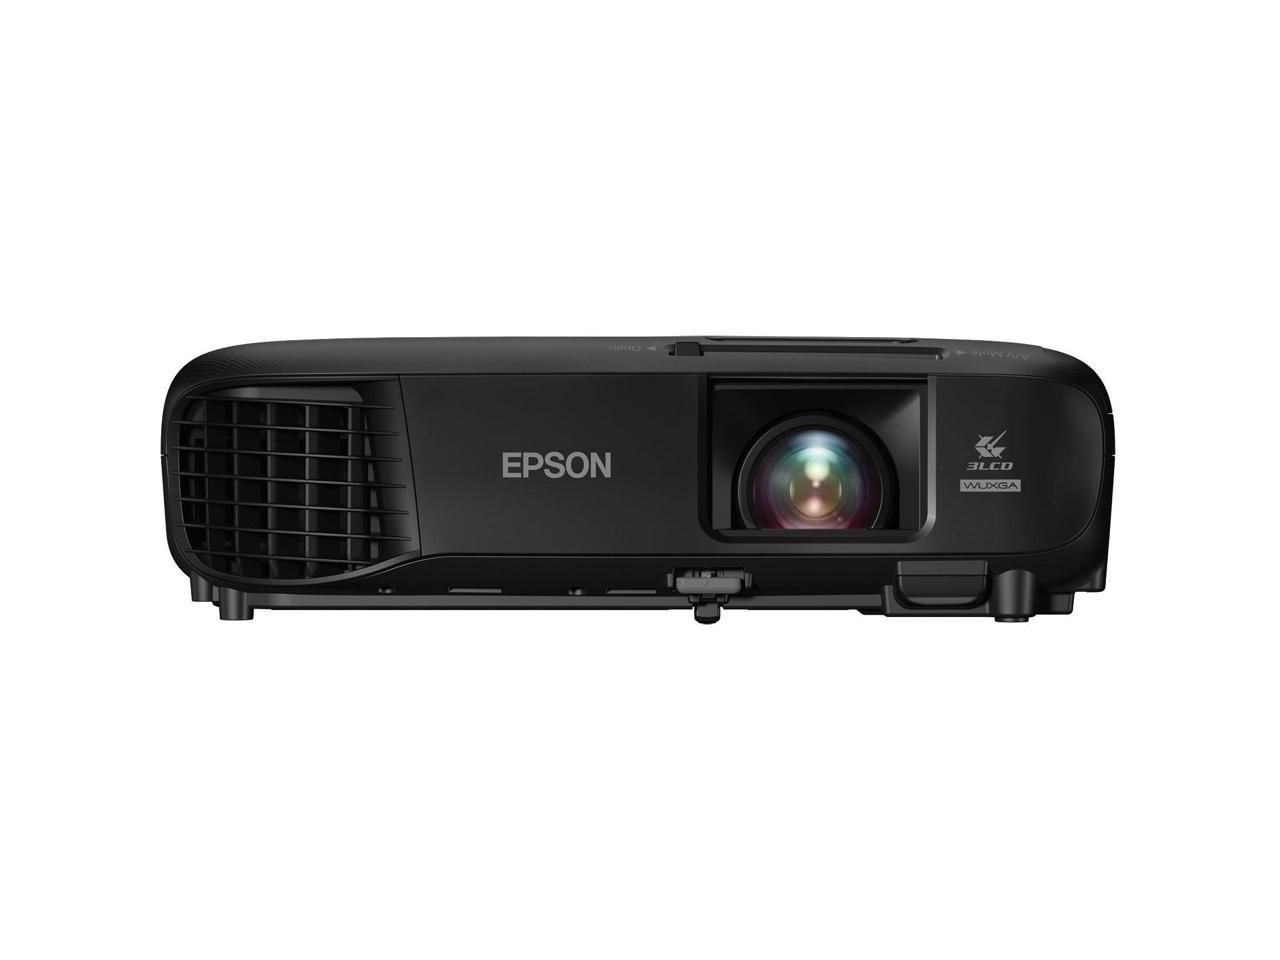 EPSON-PowerLite-1286-Wireless-WUXGA-3LCD-Projector-3600-Lumens-1920-x-1200-1-07 miniature 1